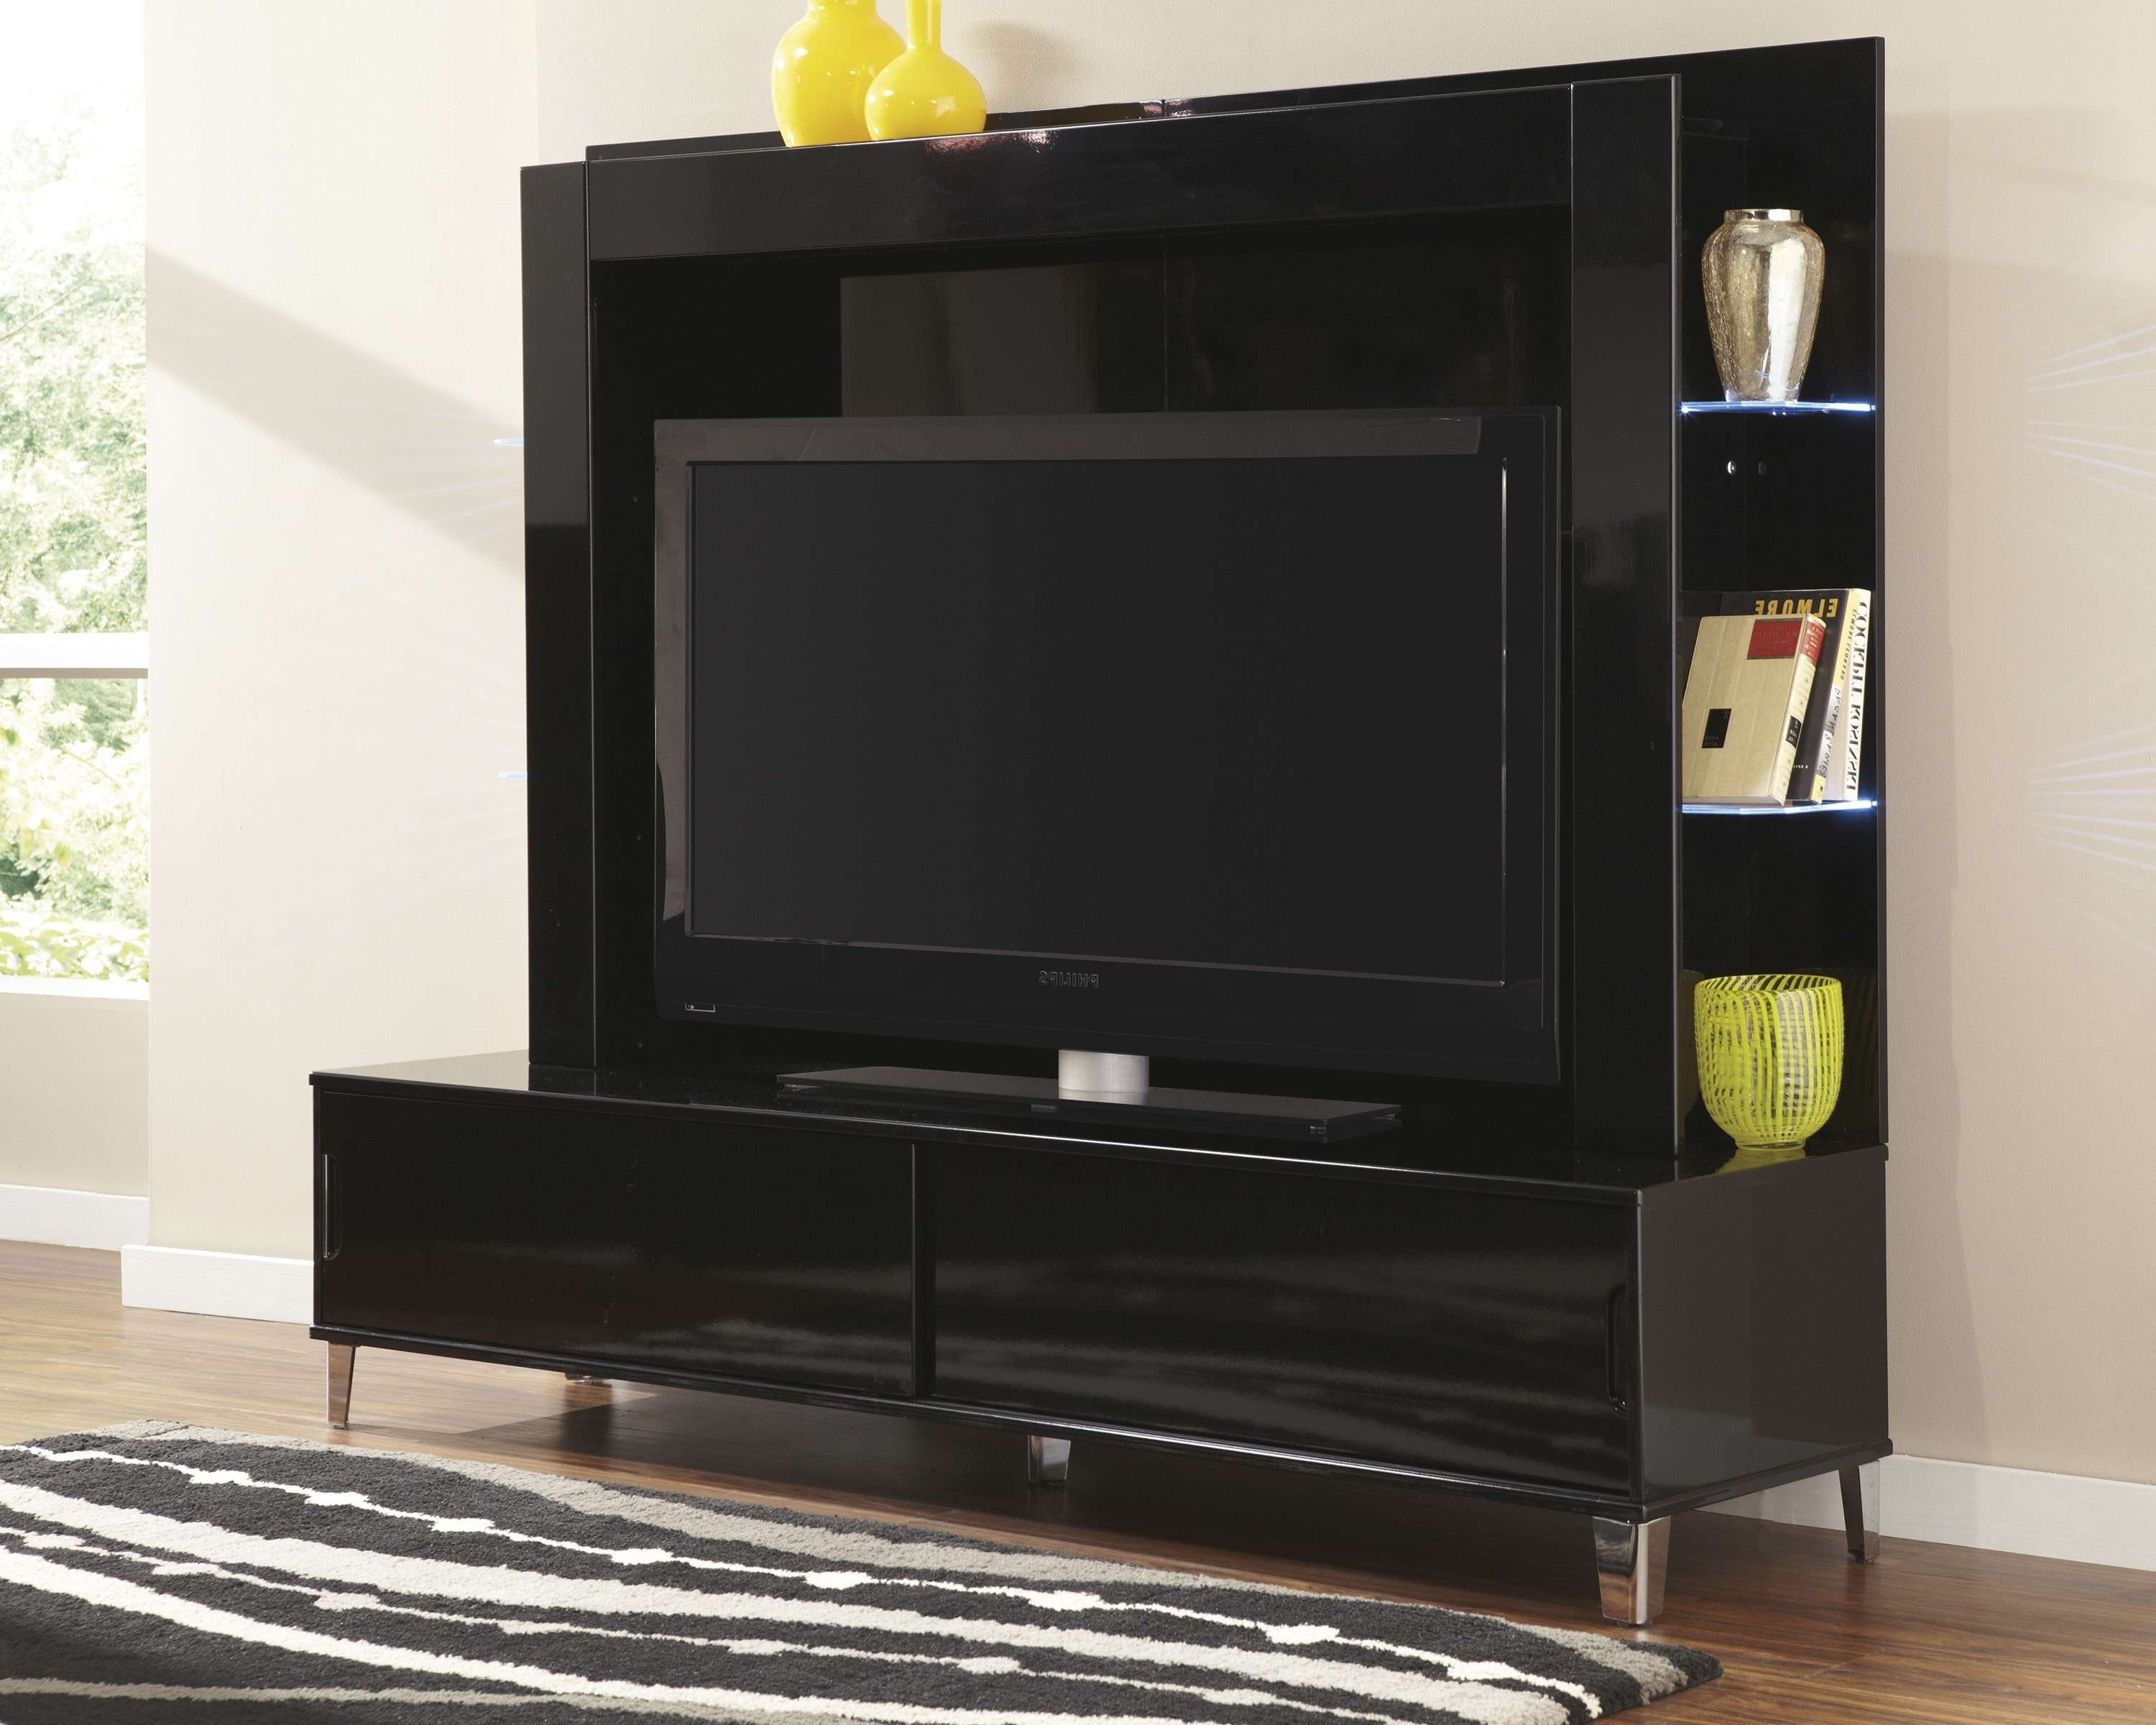 Bedrooms : Exciting Flat Screen Tv Mount Stand Cream Wall Wooden Inside  Corner Tv Cabinets For